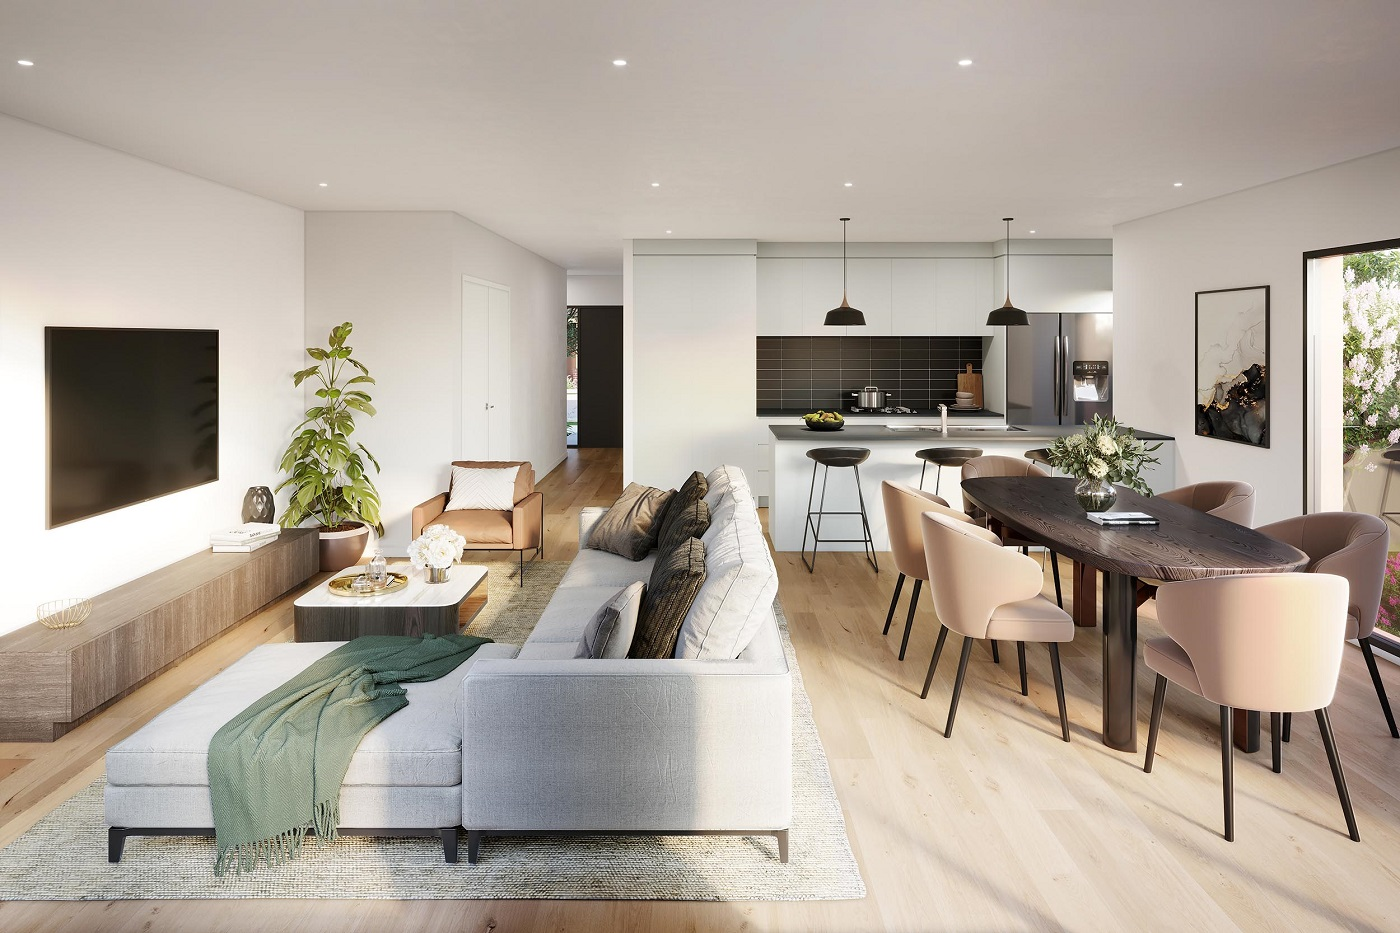 5 Essential Tips for Choosing the Perfect Builder for Your Home